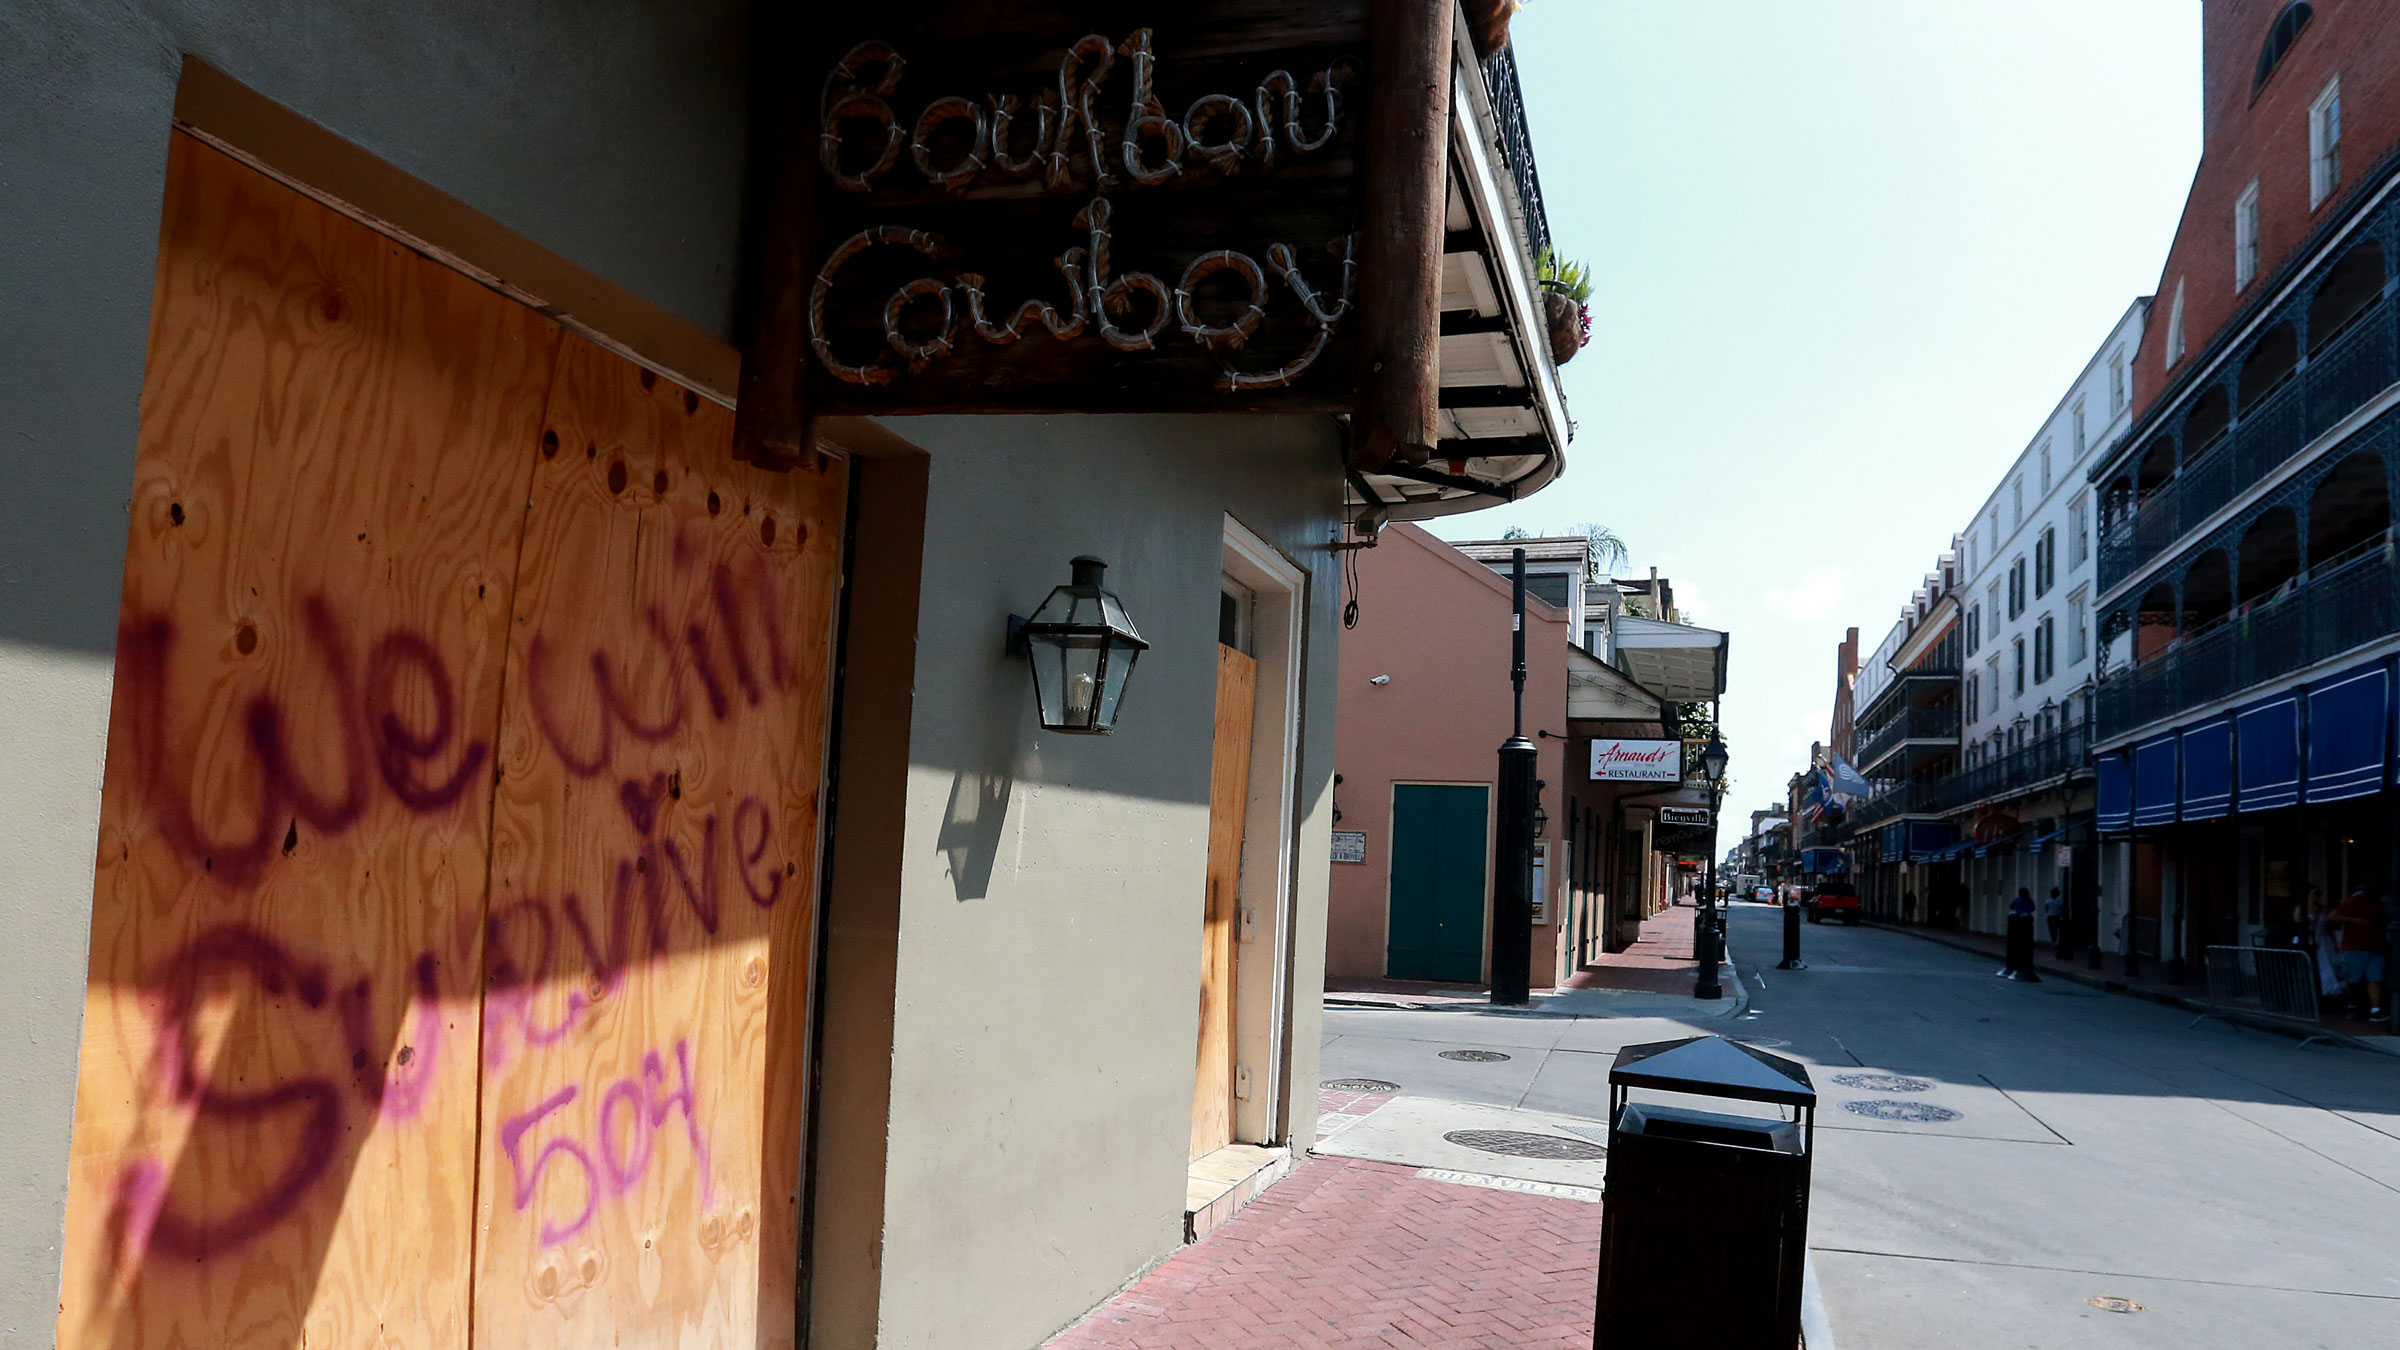 The Bourbon Cowboy bar is boarded up in New Orleans' French Quarter on Tuesday.